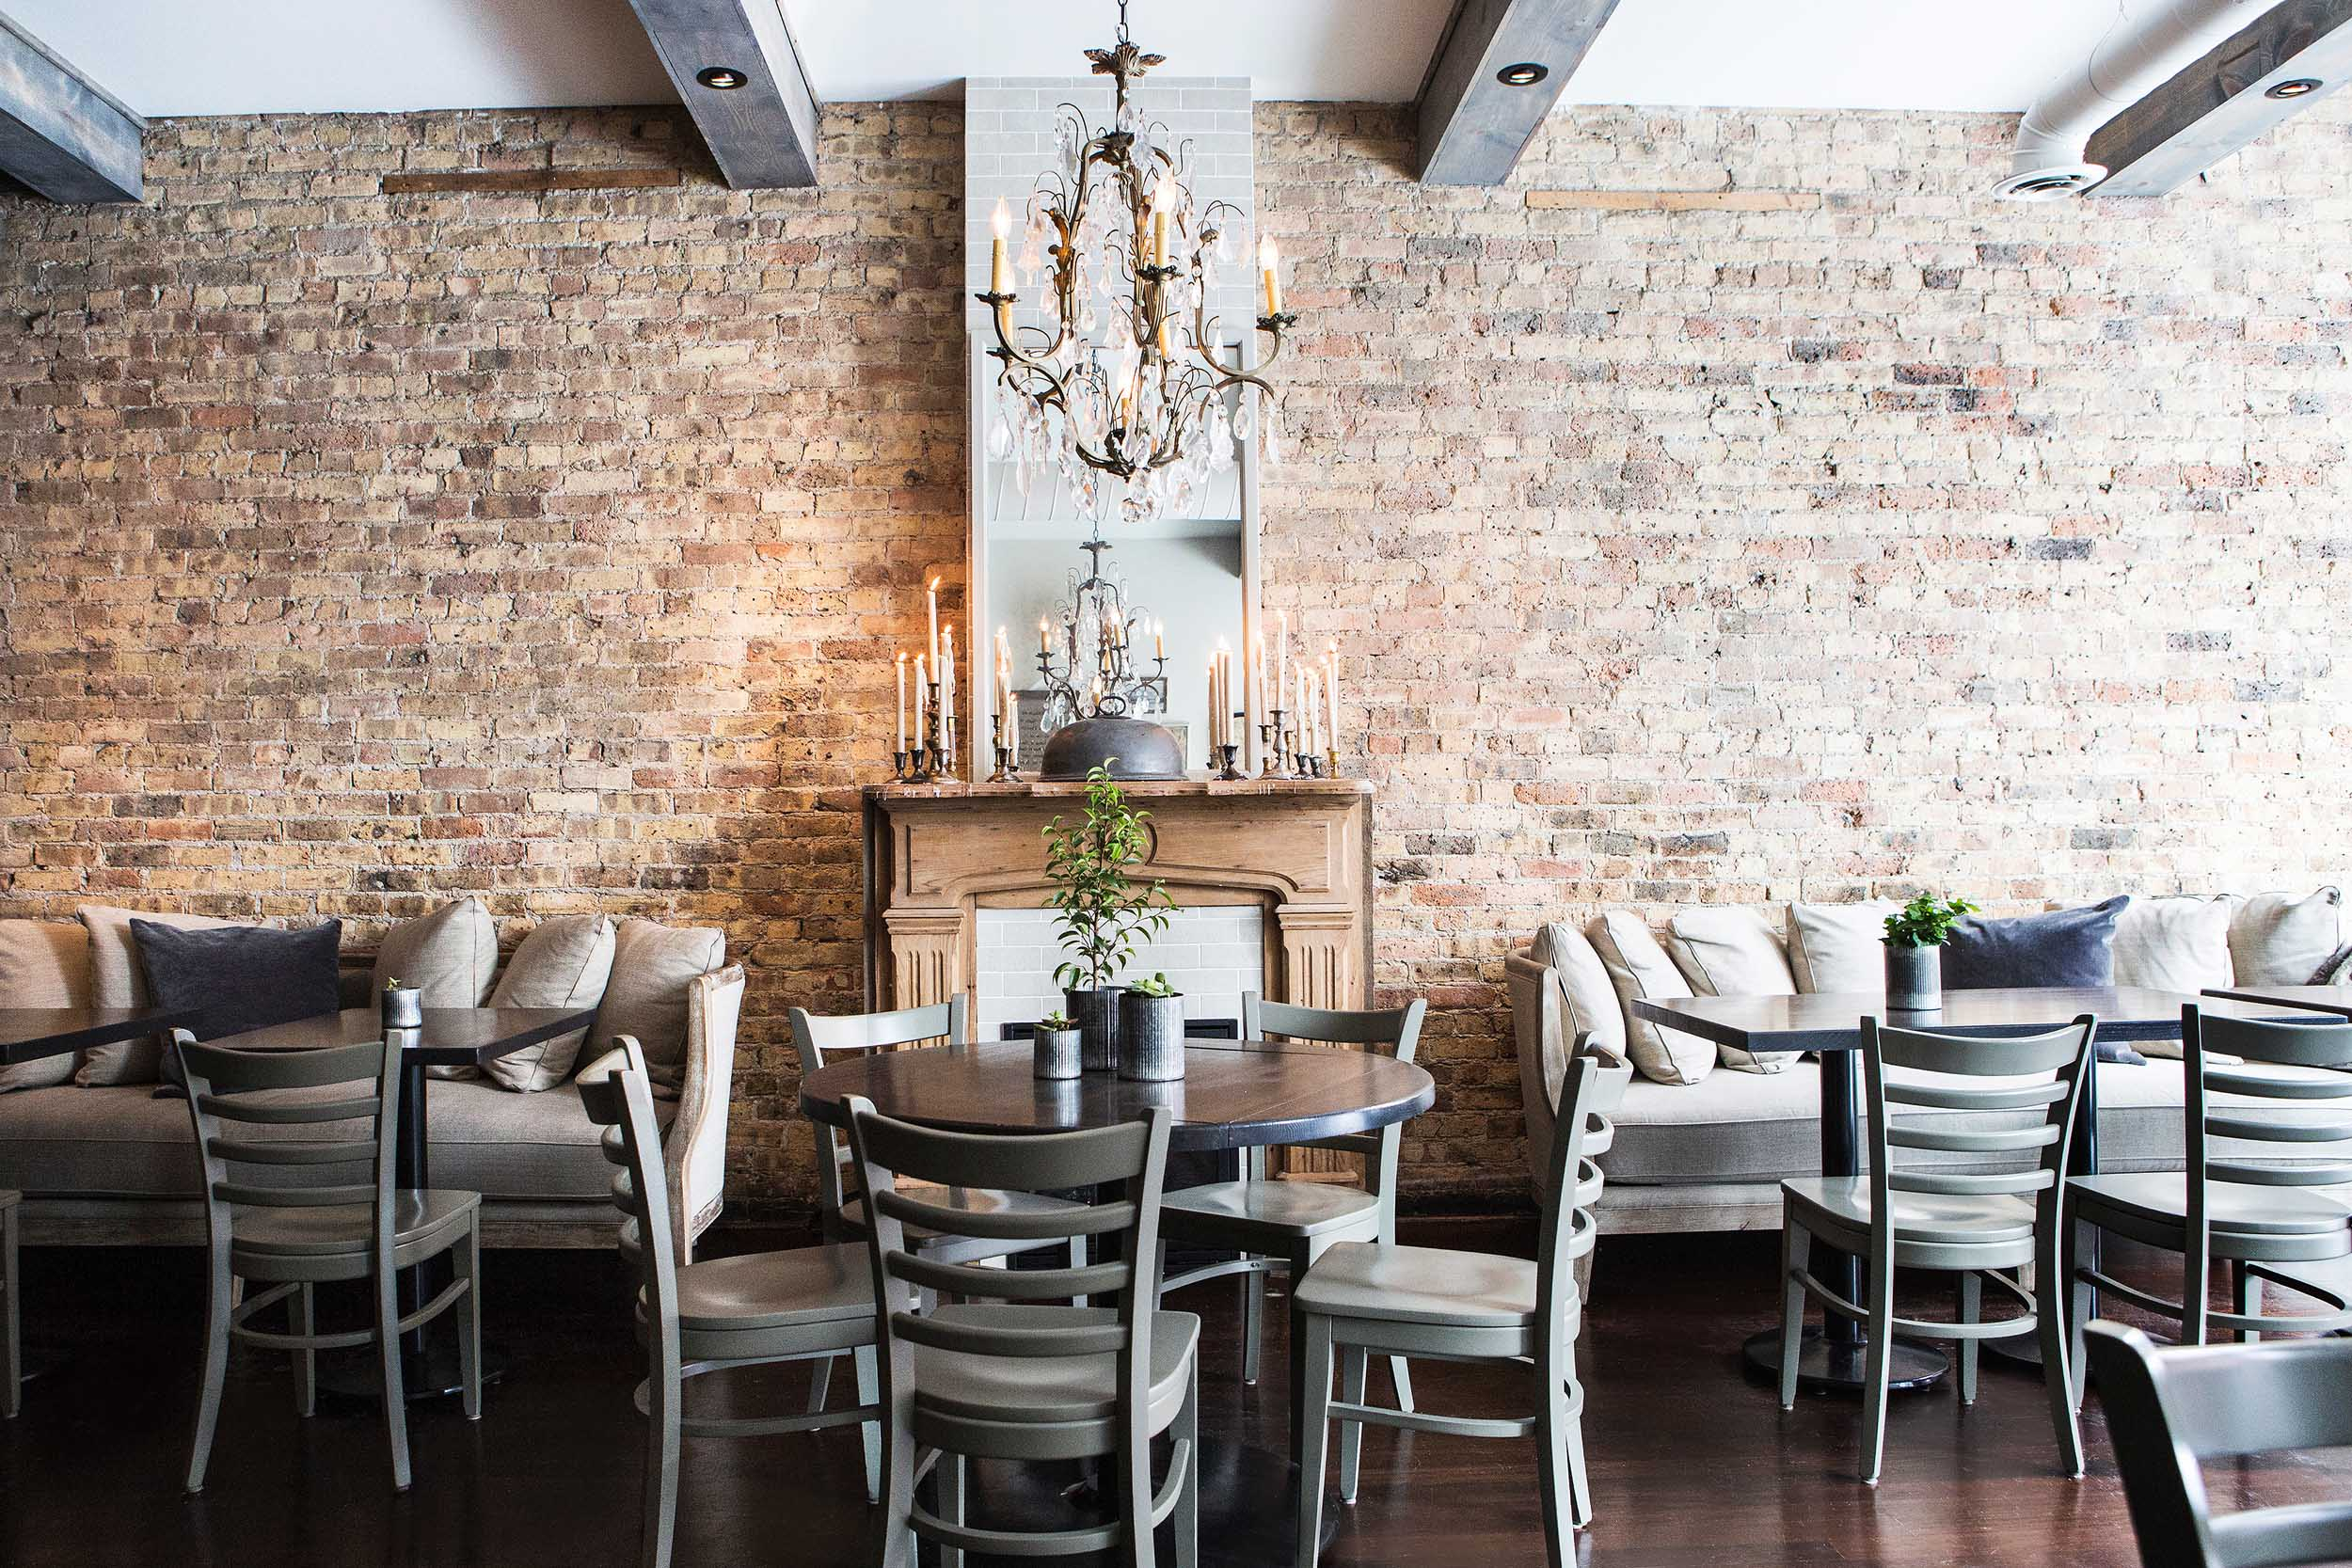 Leo_Designs_Chicago_interior_design_white_oak_tavern9.jpg